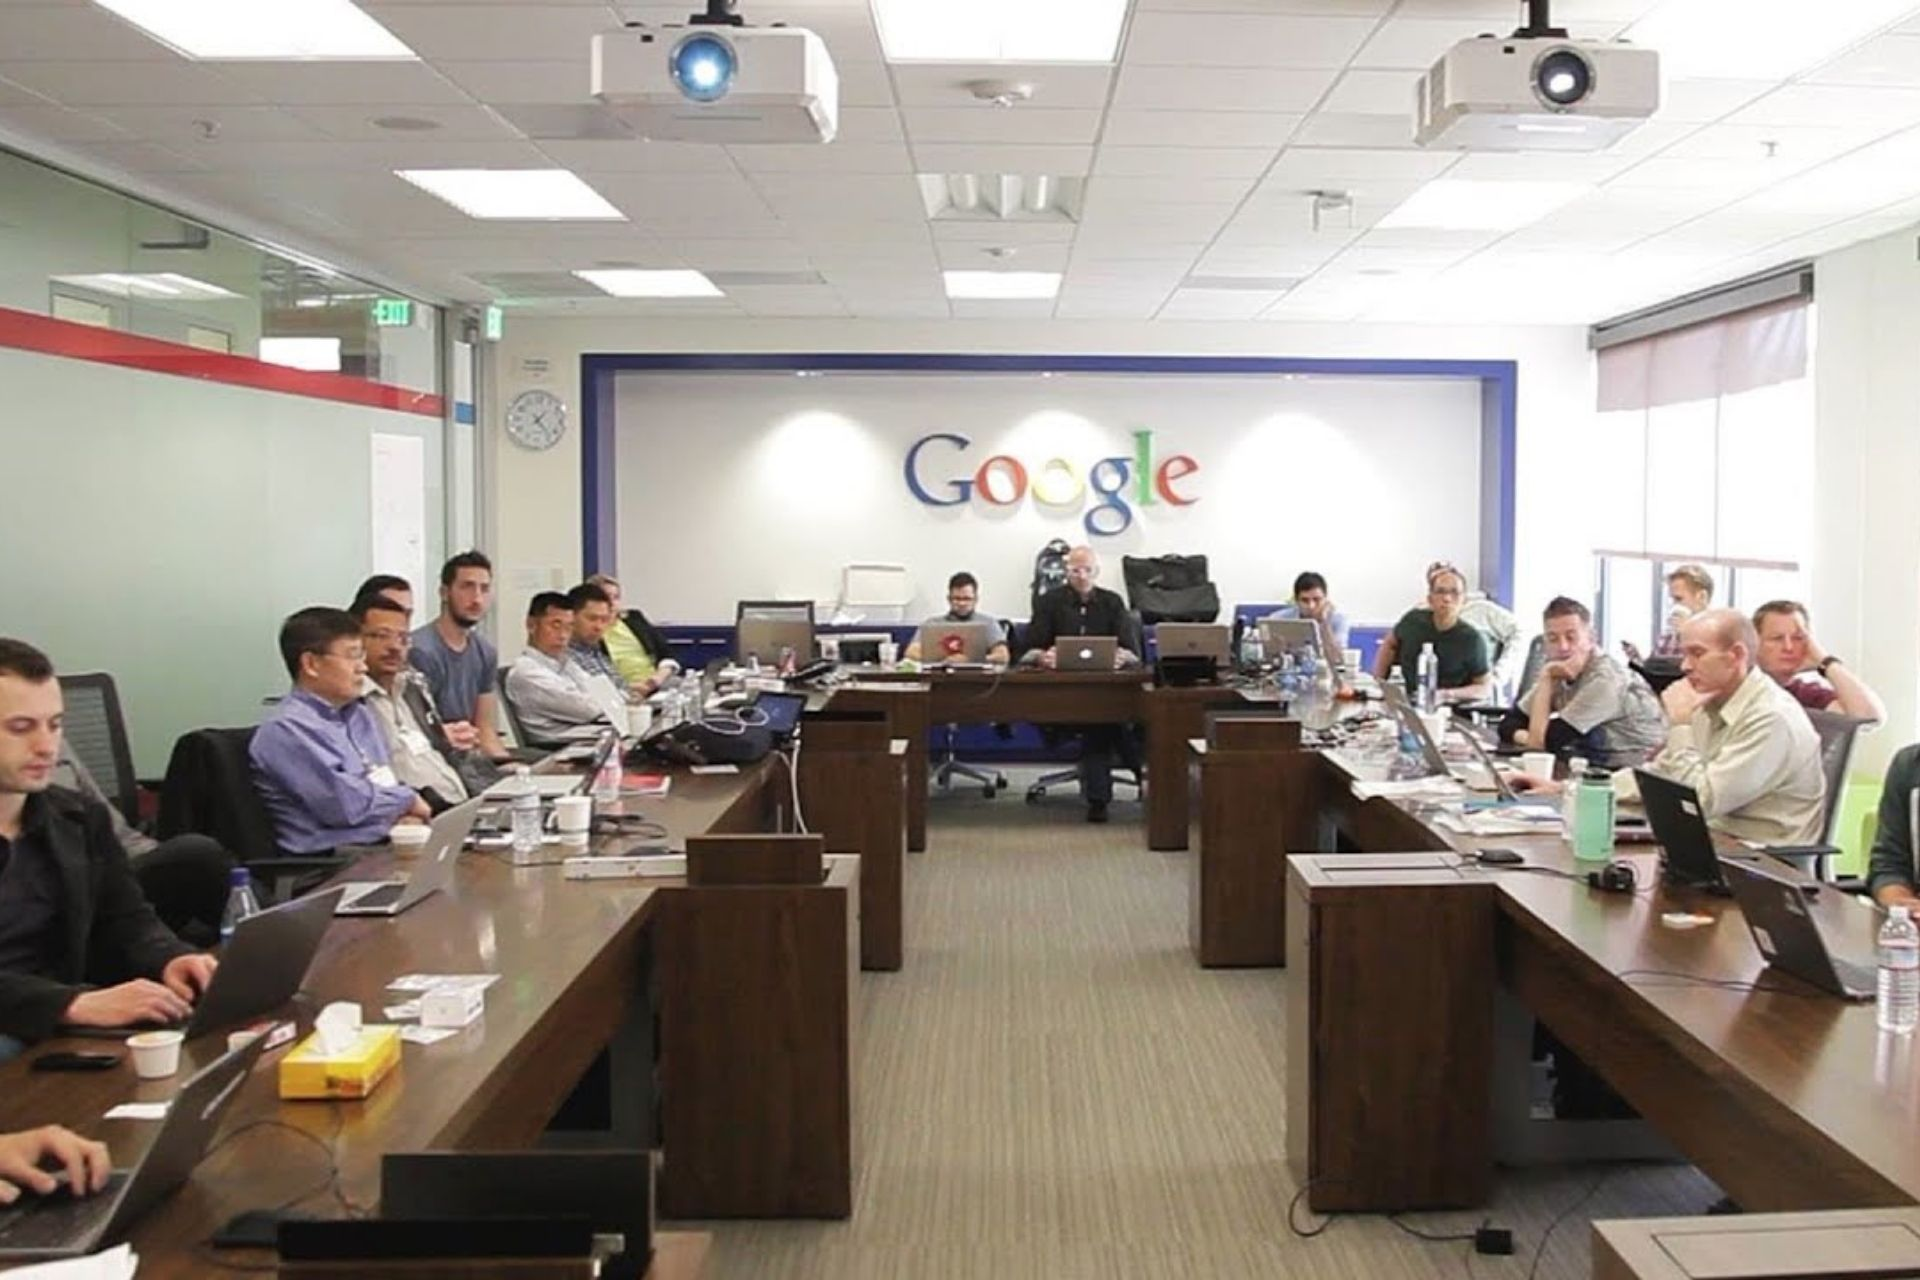 A meeting room full of people at google